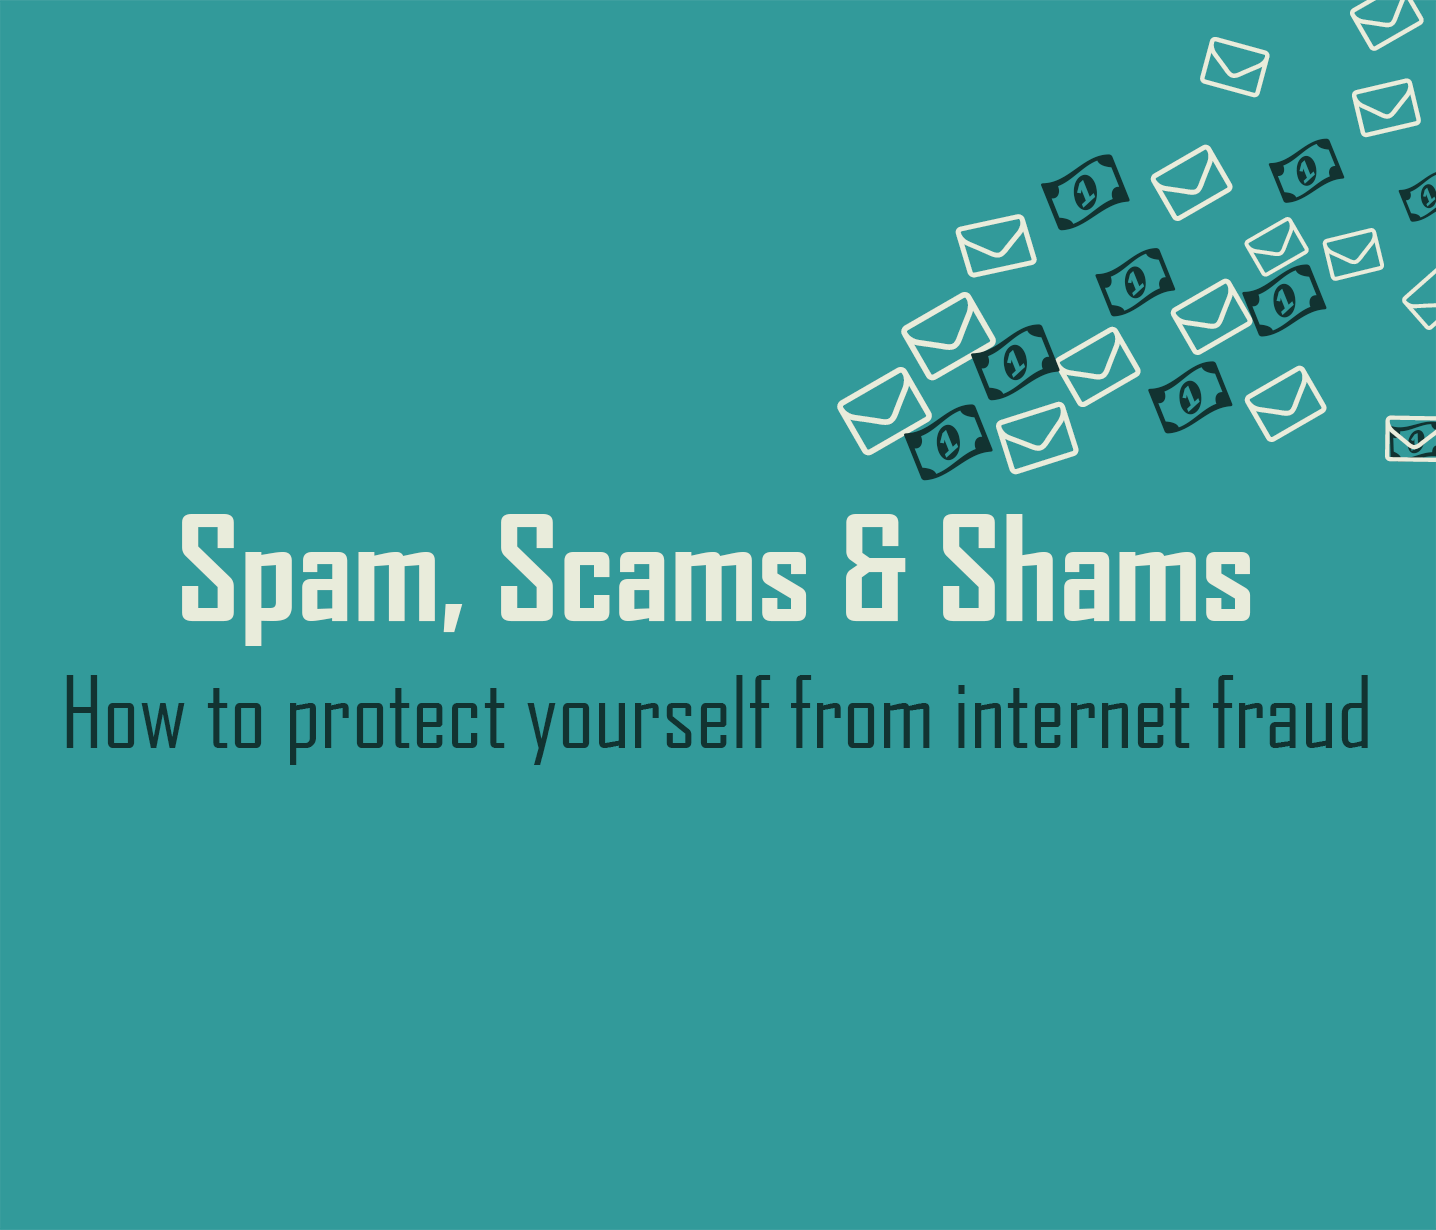 Spam, Scams and Shams - How to protect yourself from internet fraud